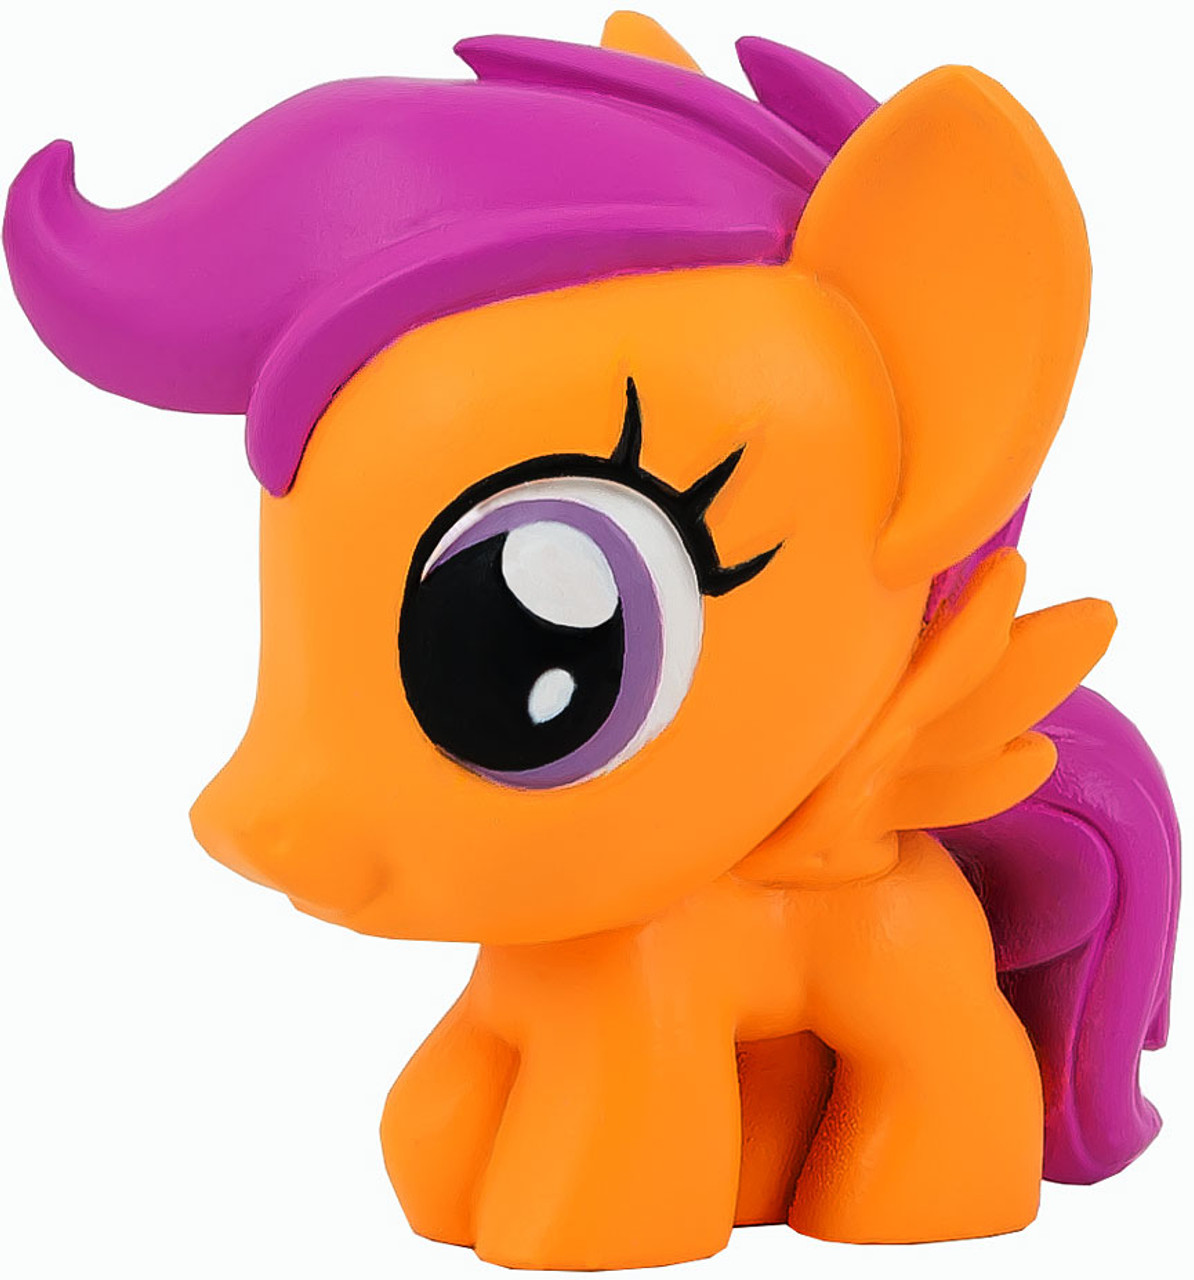 My Little Pony Fashems Scootaloo 1 5 Mini Figure Loose Tech4kids Toywiz While scootaloo's and rainbow dash's relationship is growing apart, her and apple jack's seem to be growing stronger. my little pony fashems scootaloo 1 5